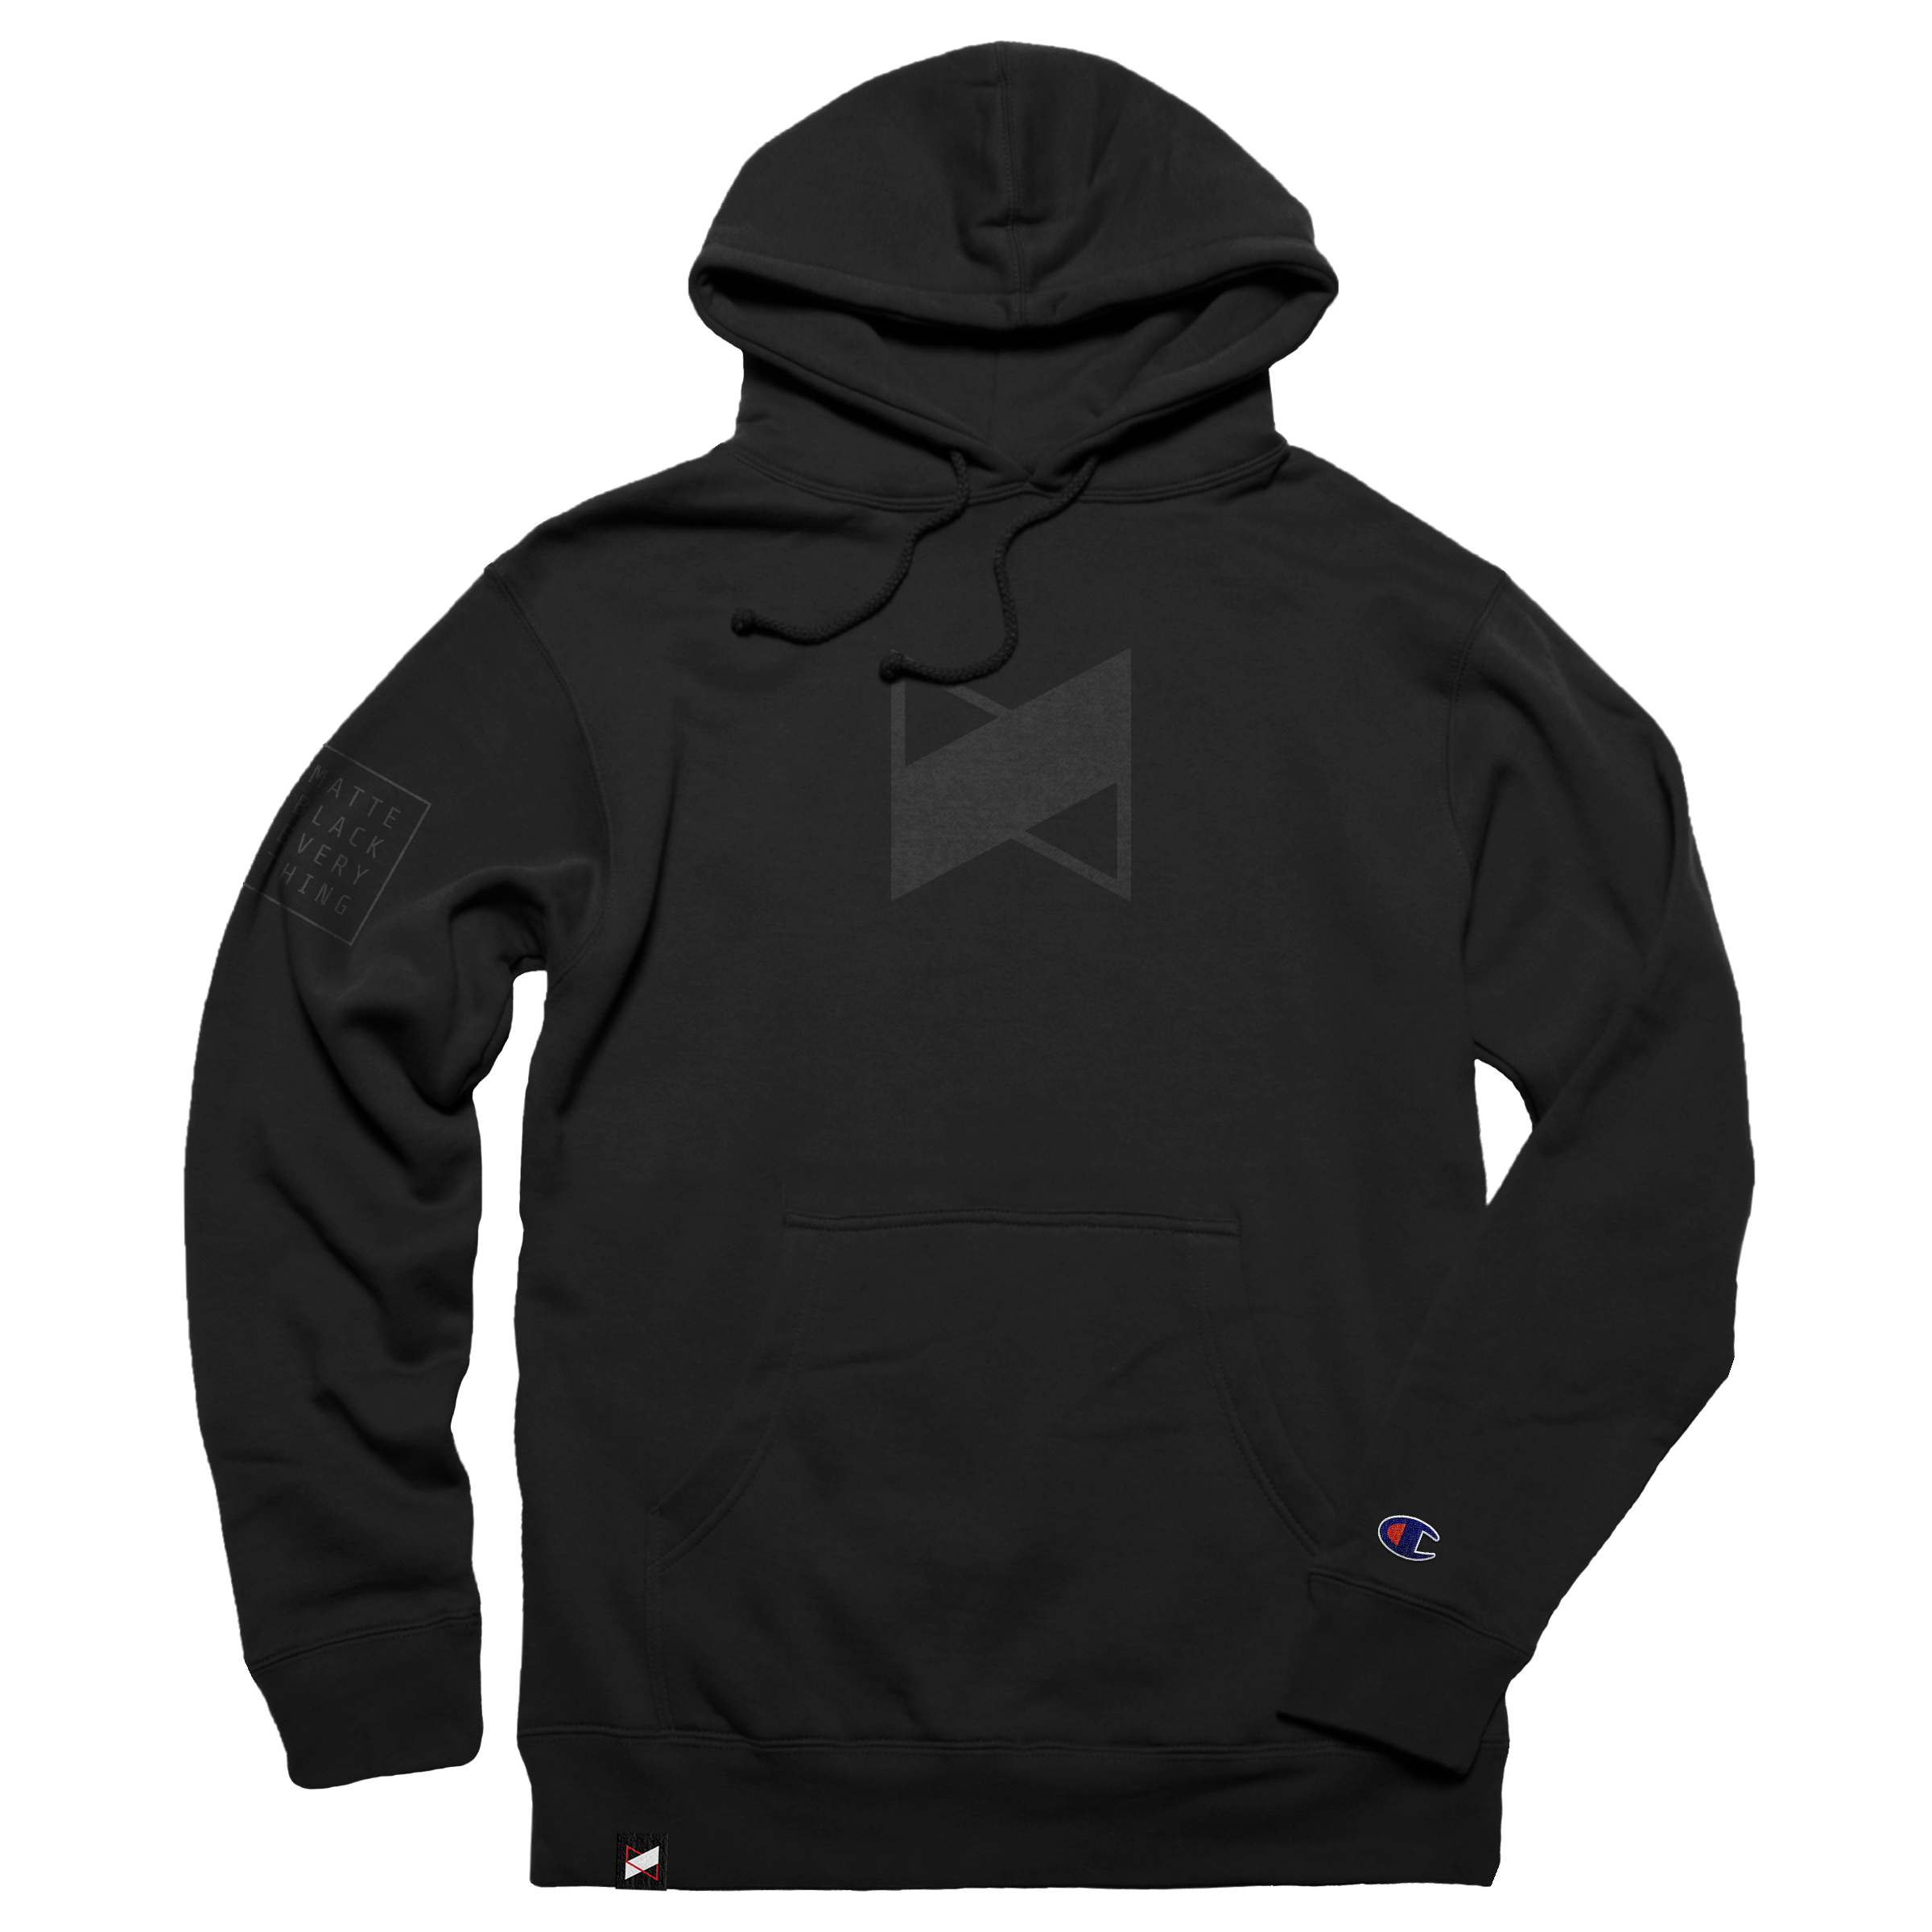 "Black Designed Hoodie"" MkbhdBring The By Life To Matte Oyv8P0Nnmw"